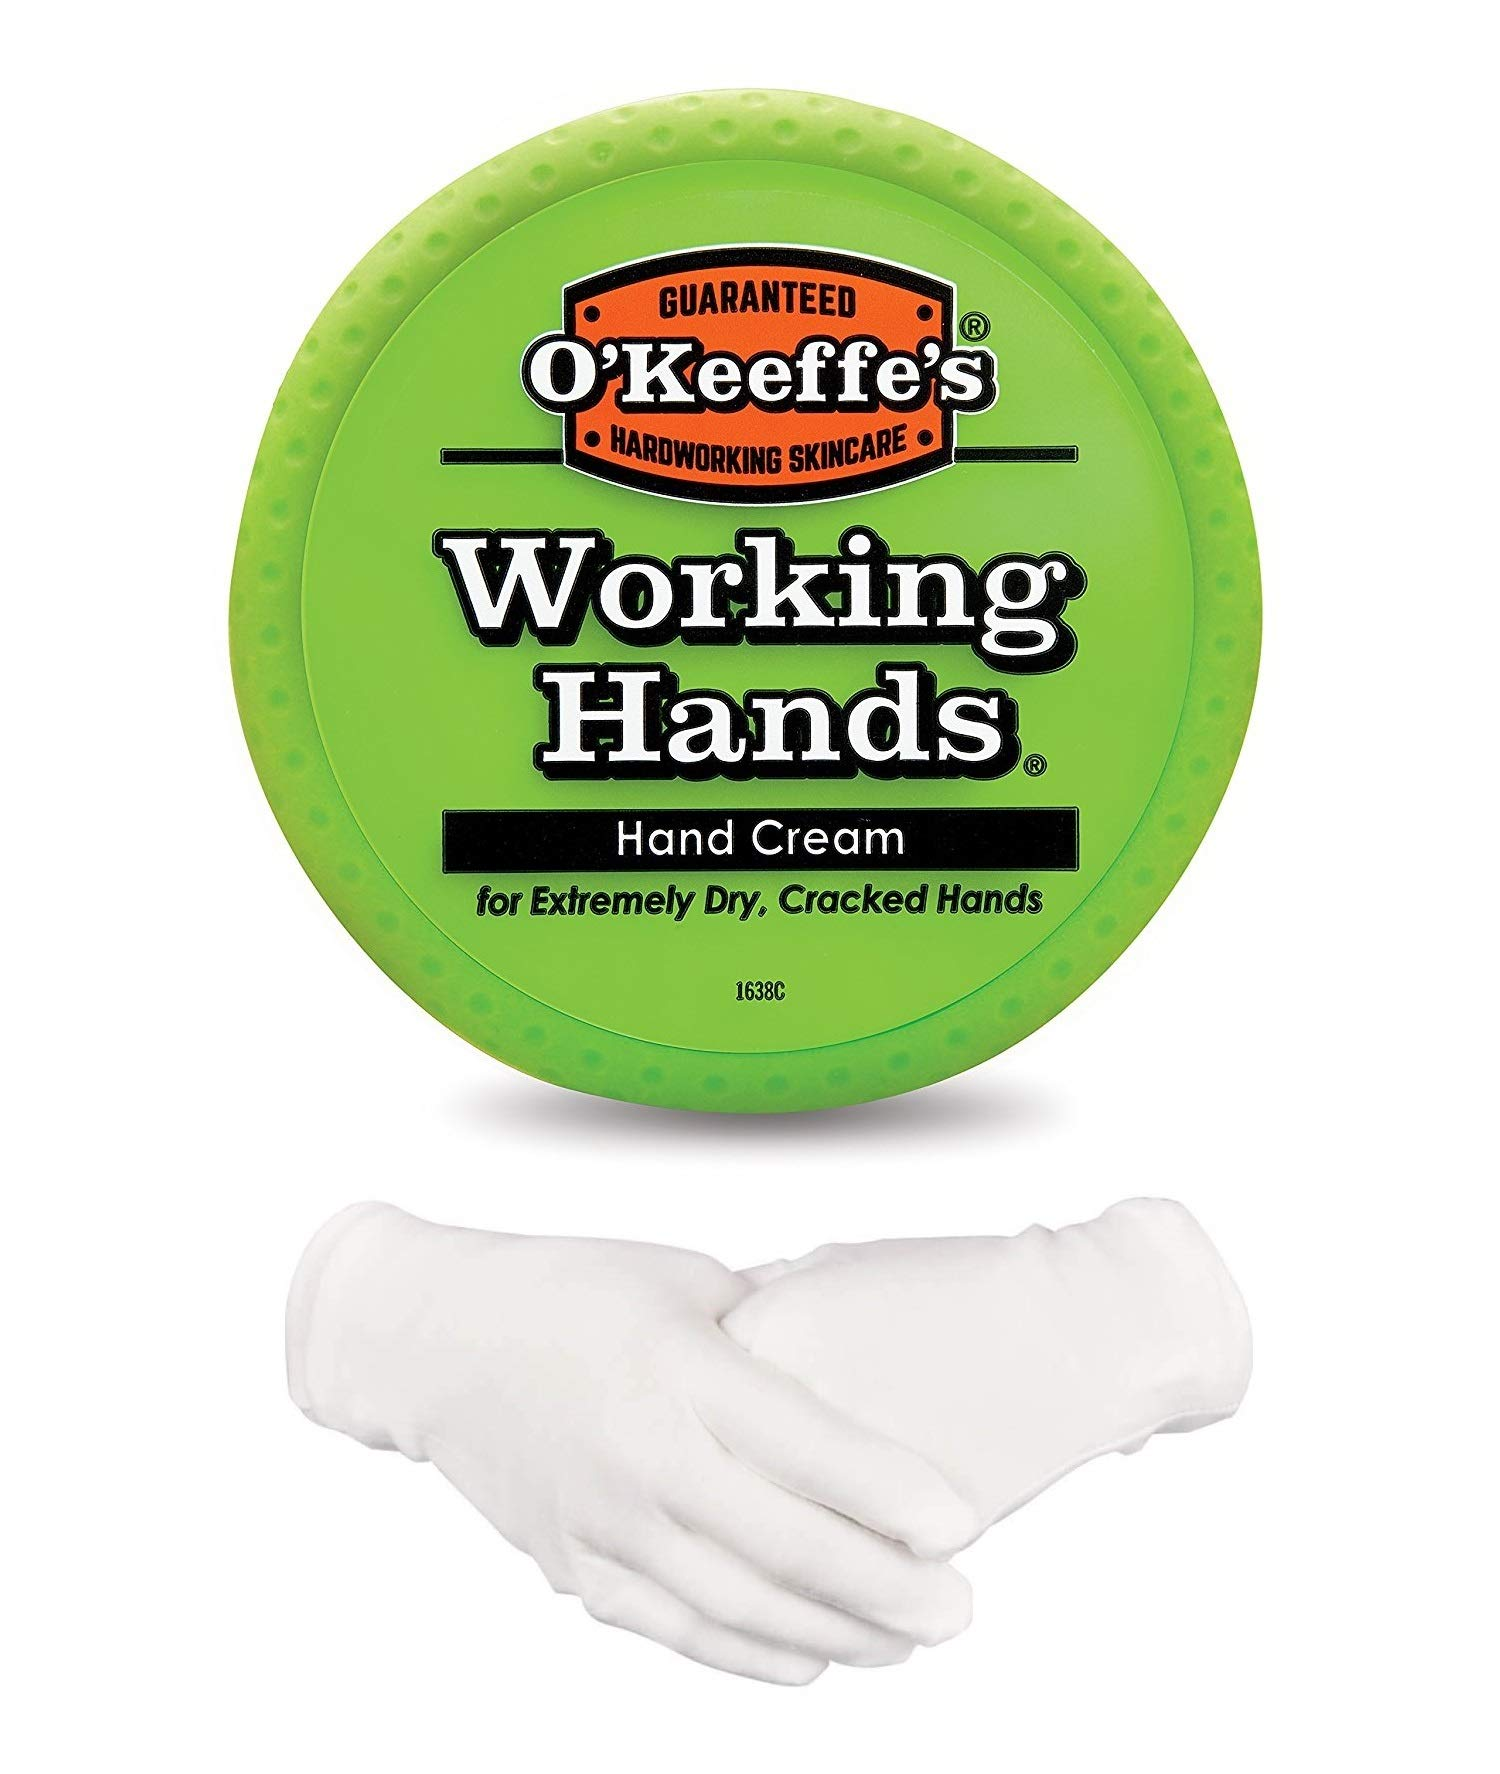 O'Keeffe's Working Hands Hand Cream 96 g/3.4 oz With Cotton Gloves by O'Keffe's